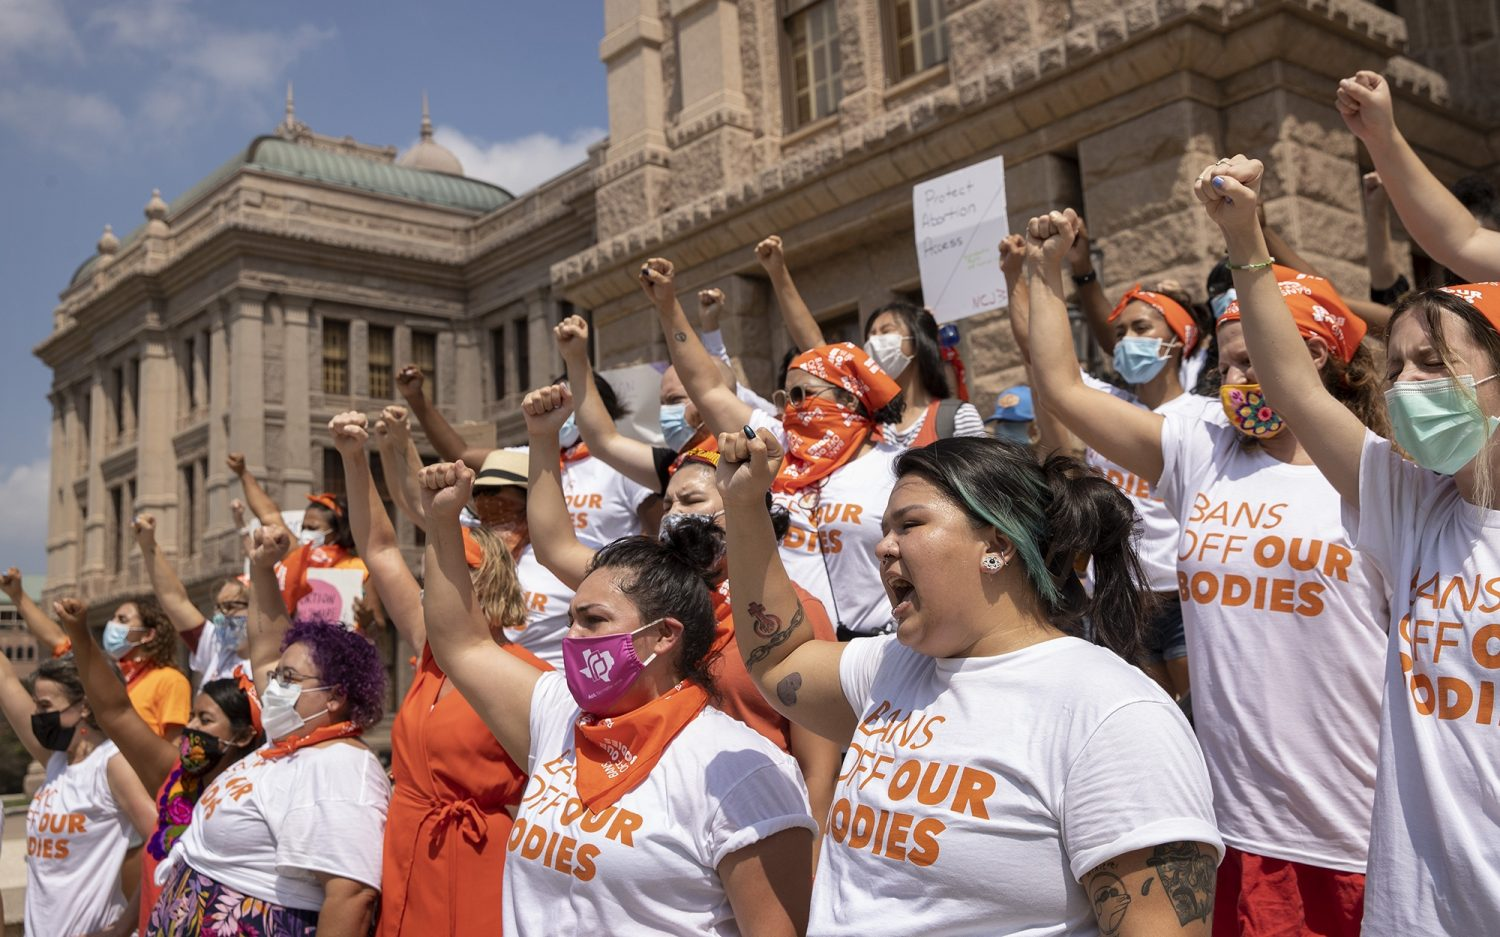 Pro-lifers minister to panicked women in Texas